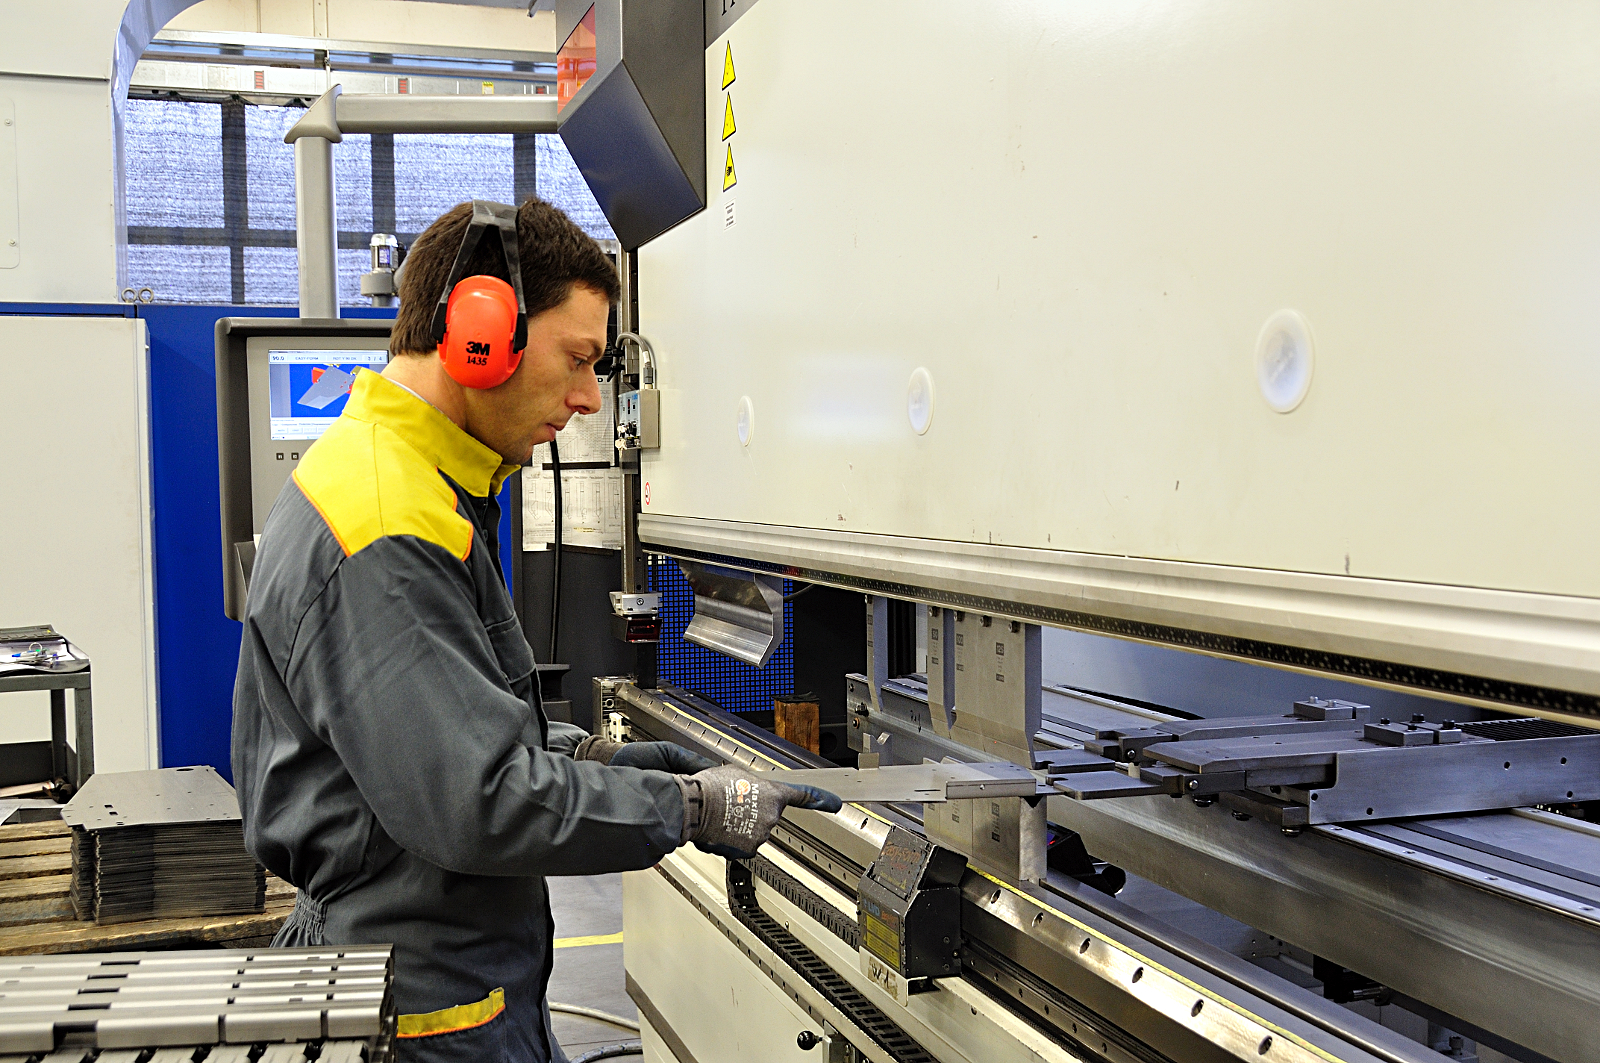 Mach - production plant in Italy